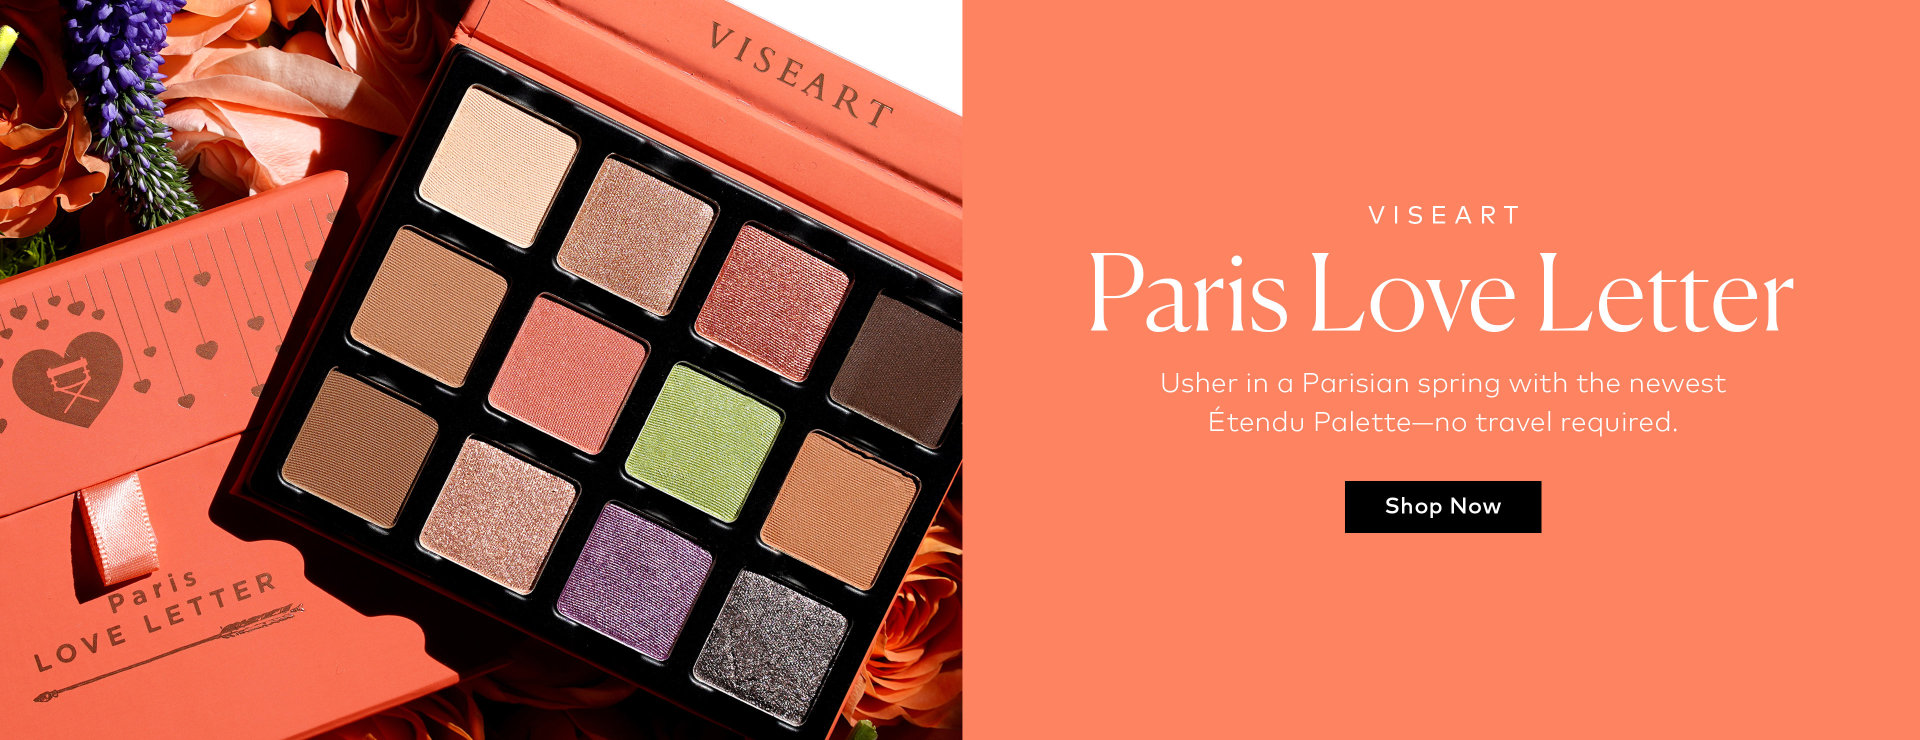 Shop the Viseart Paris Love Letter Étendu Palette on Beautylish.com